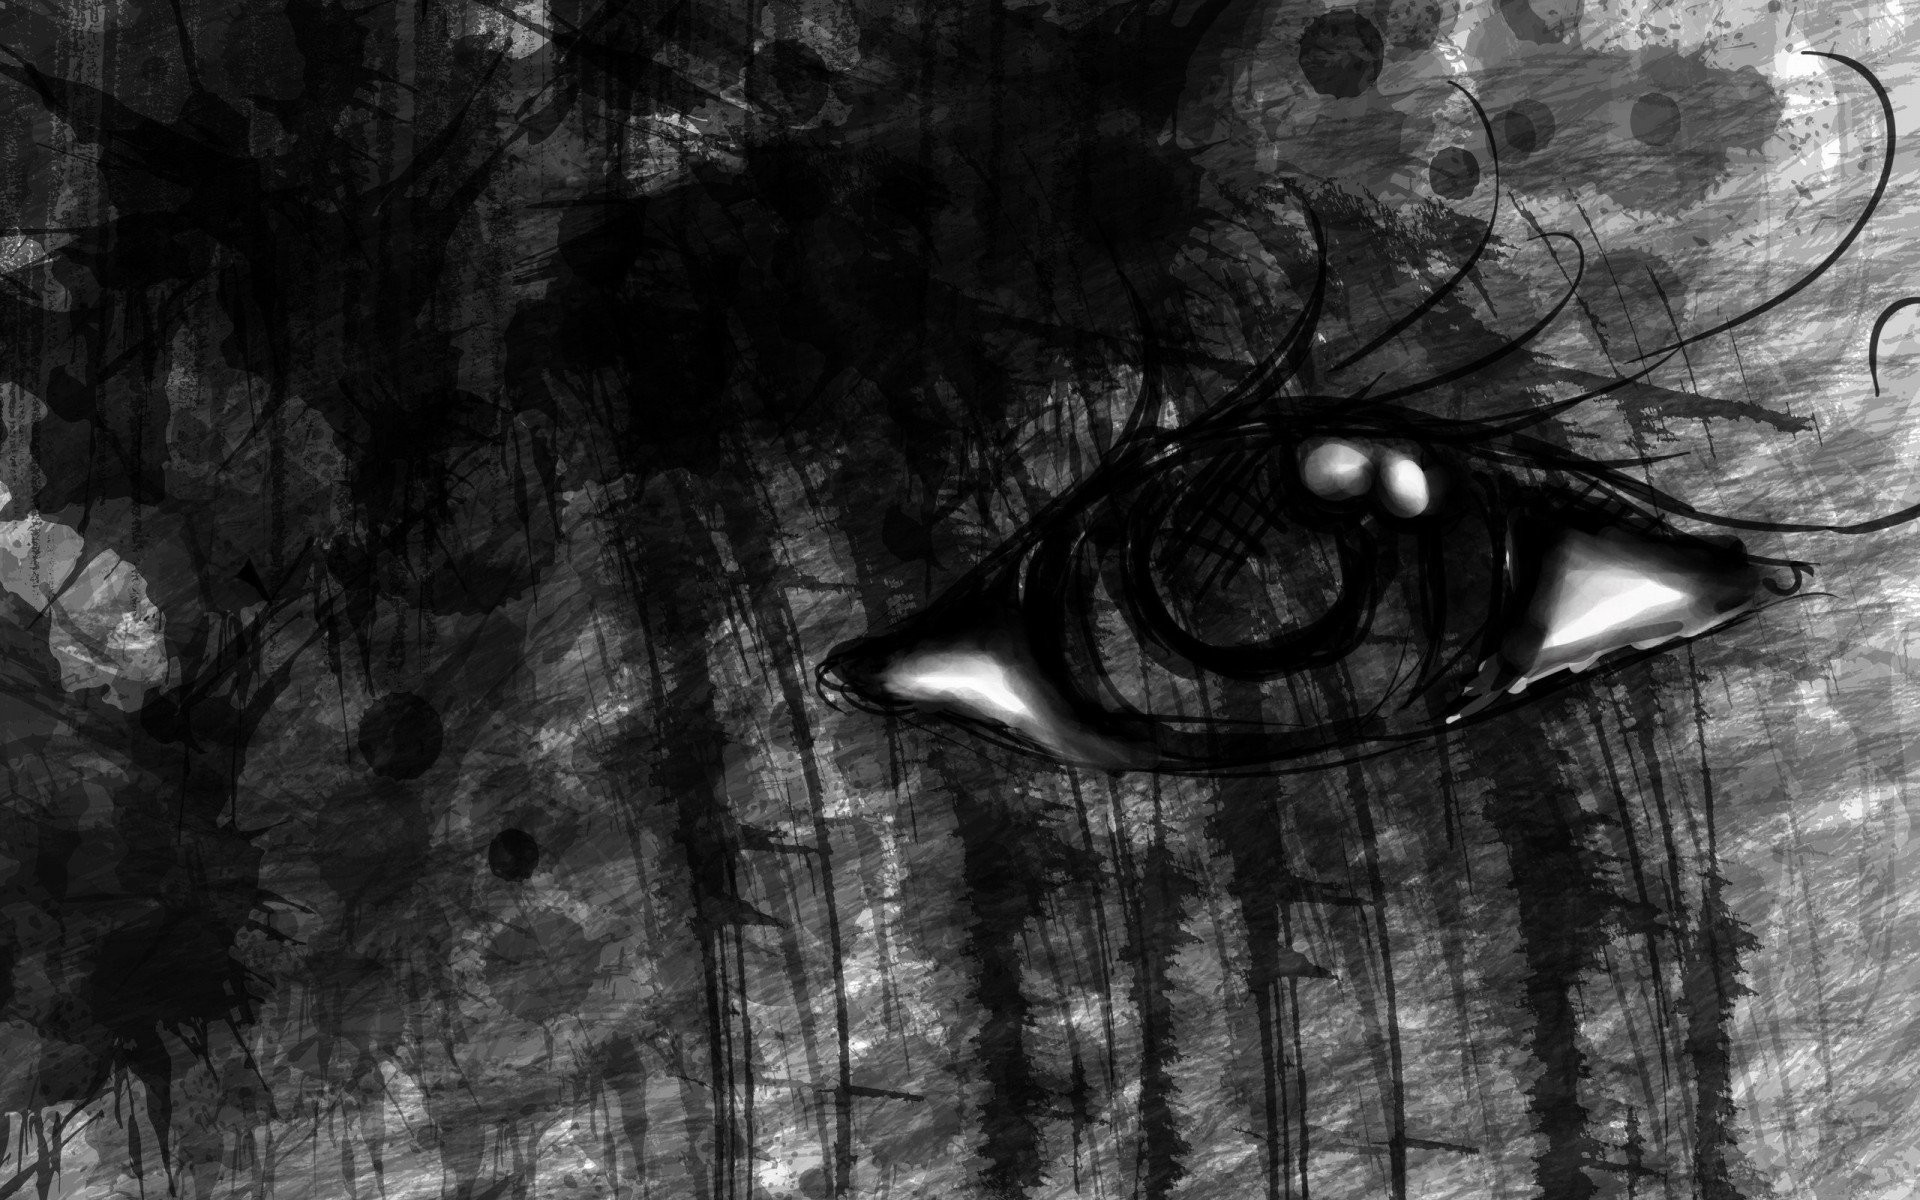 1920x1200 background eyes, eye, backgrounds, artwork, emo, high definiton, evil,  backgrounds,gothic Wallpaper HD